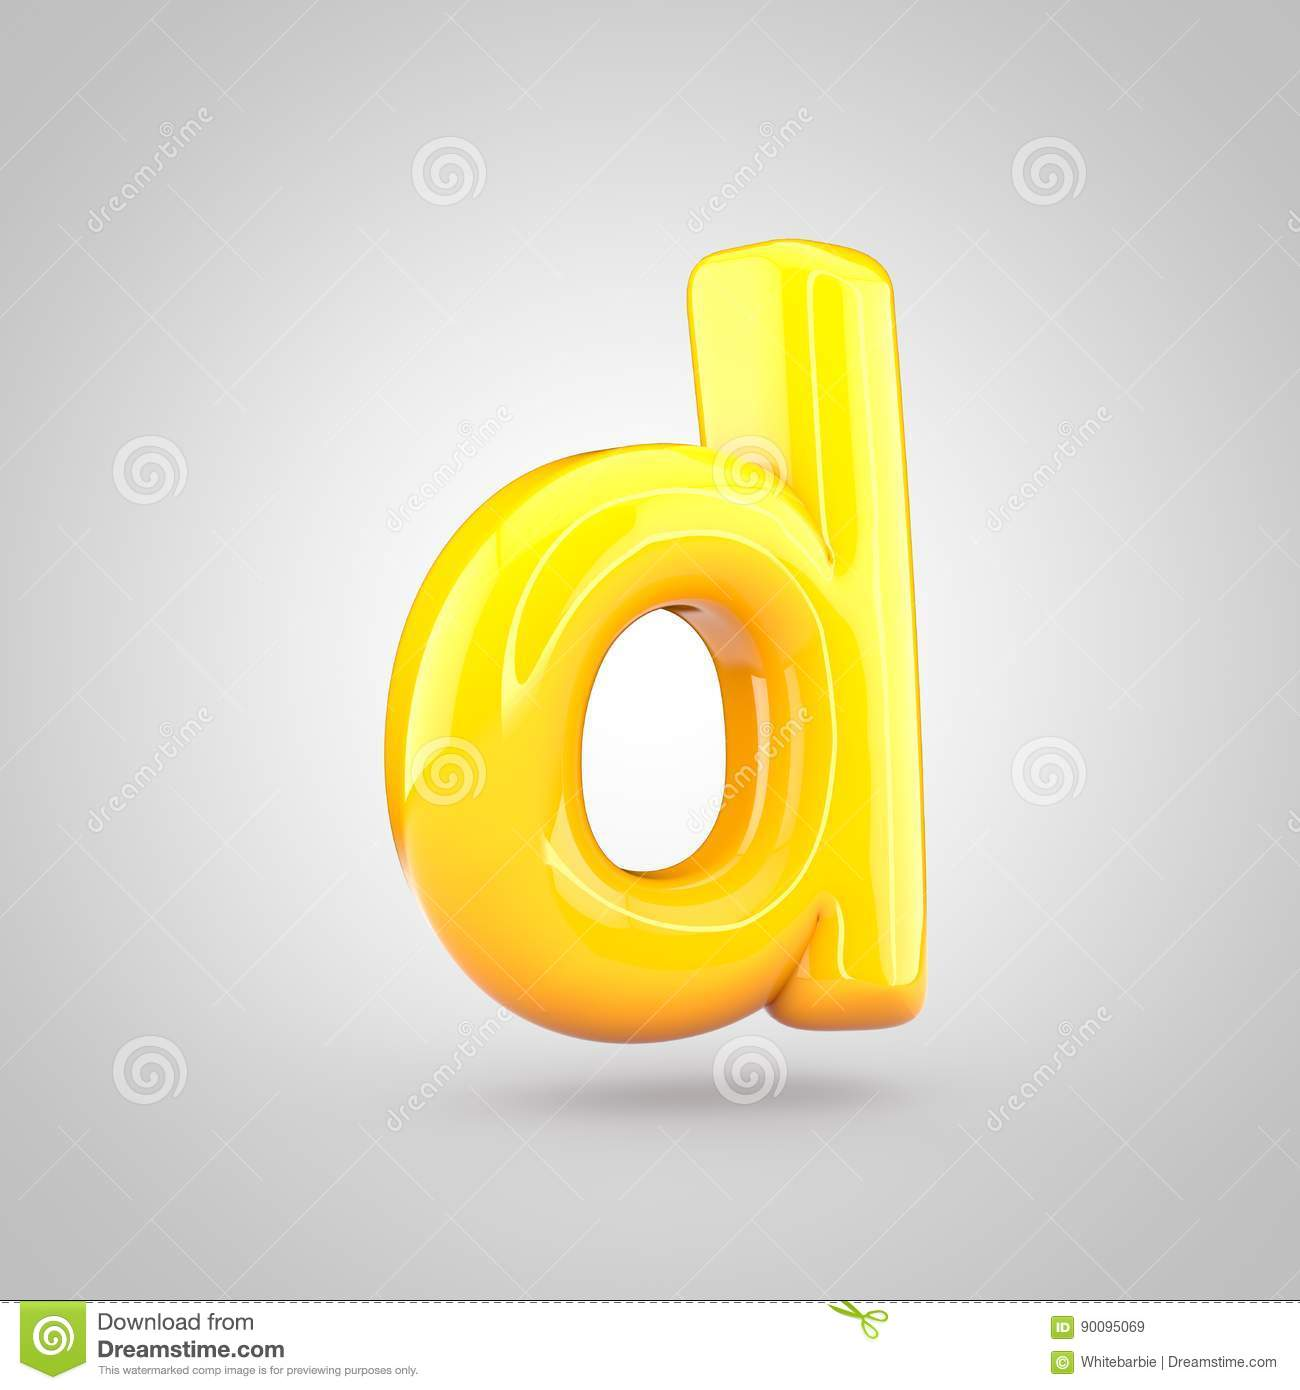 Glossy Yellow Paint Letter D Lowercase Stock Illustration